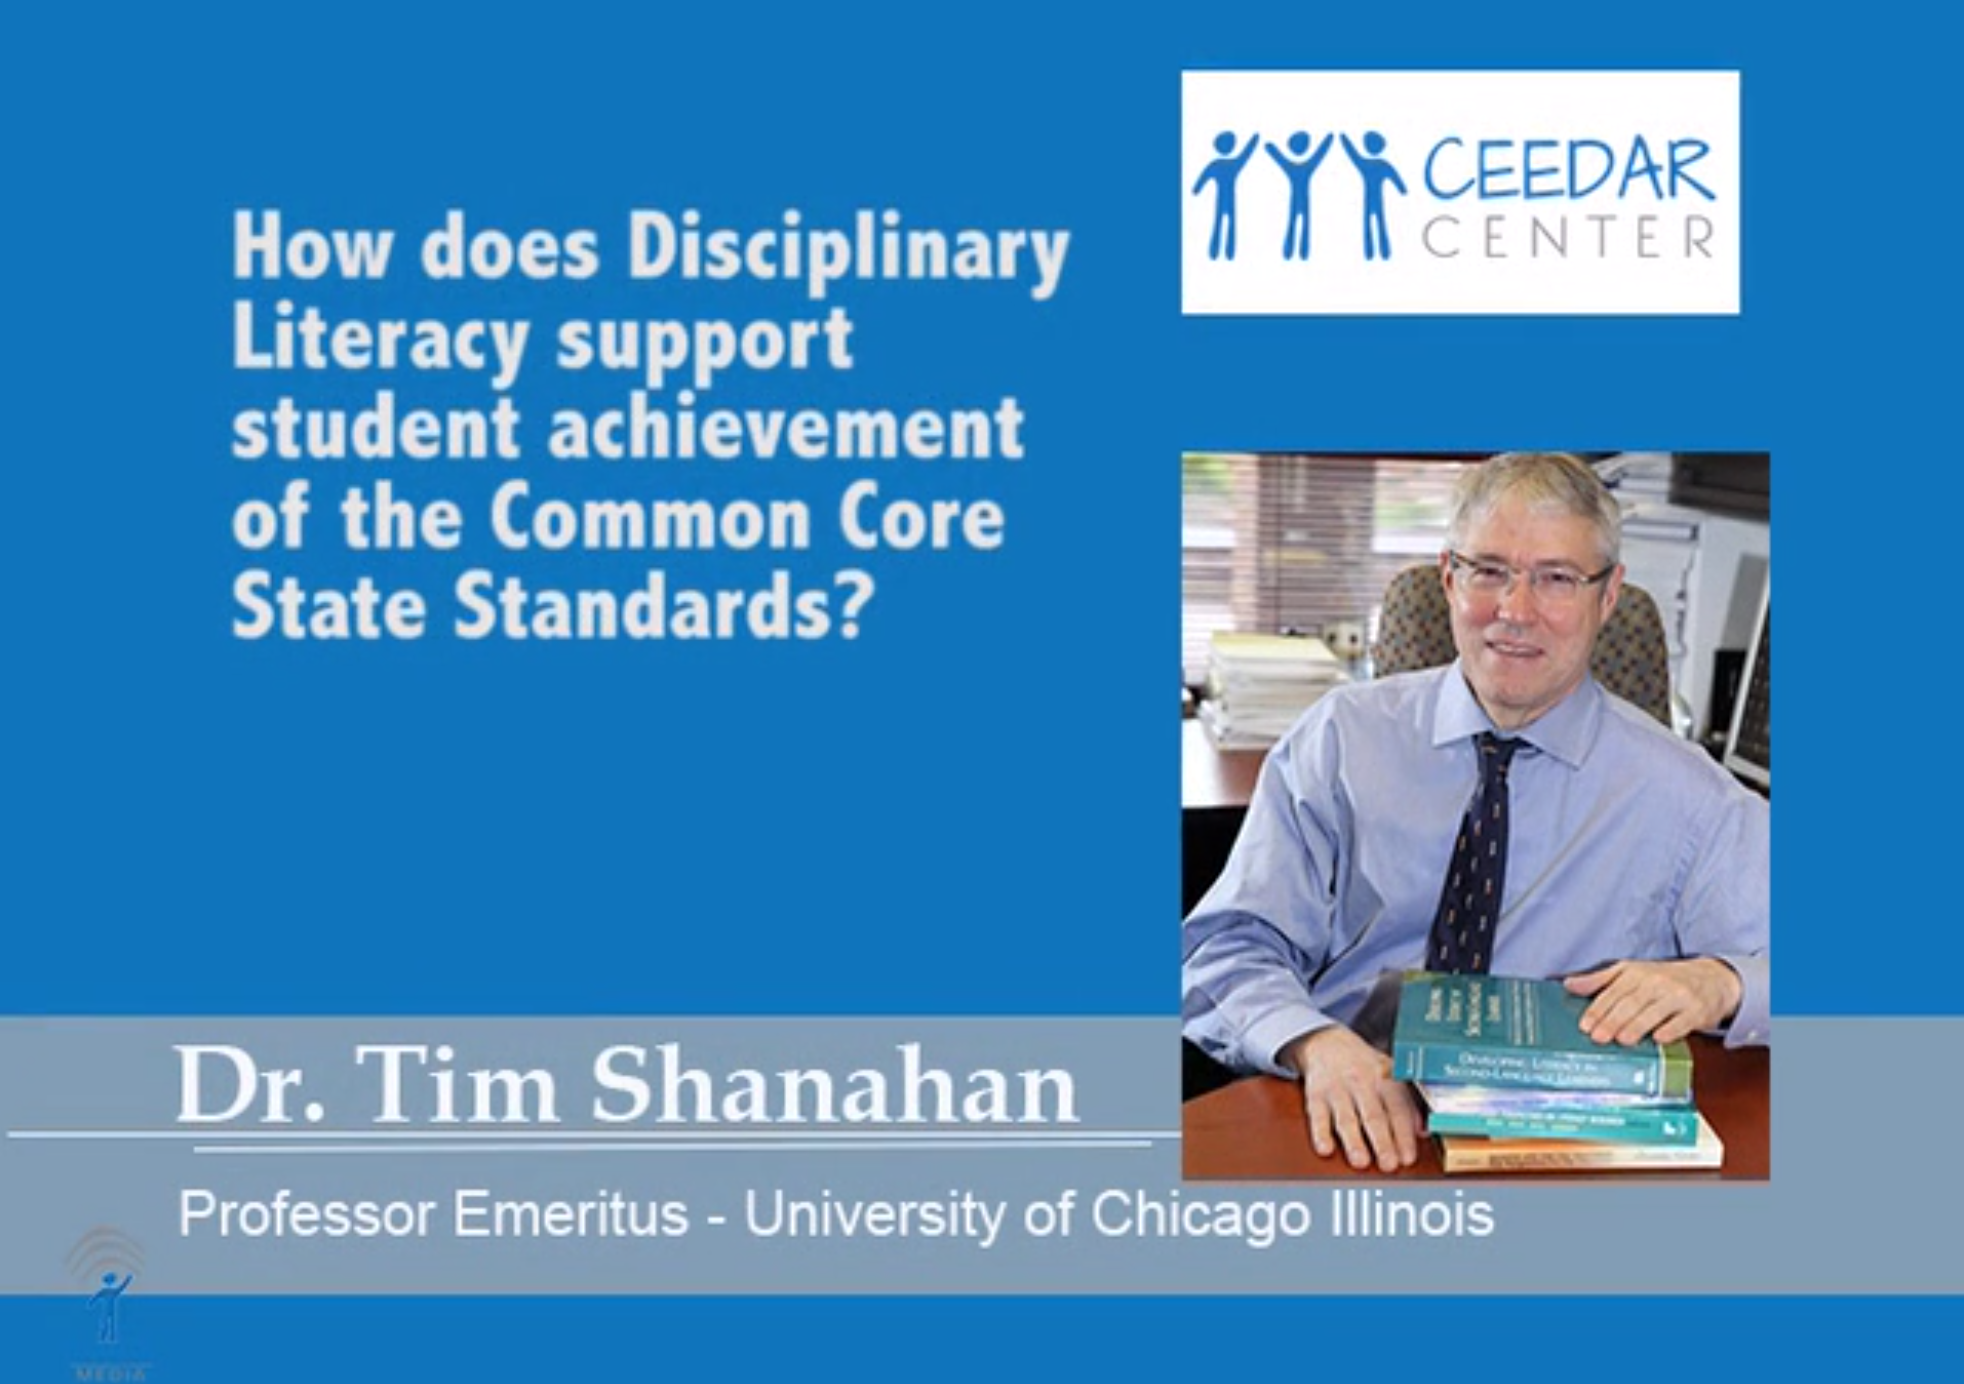 Dr. Tim Shanahan on disciplinary literacy in support of the CCSS